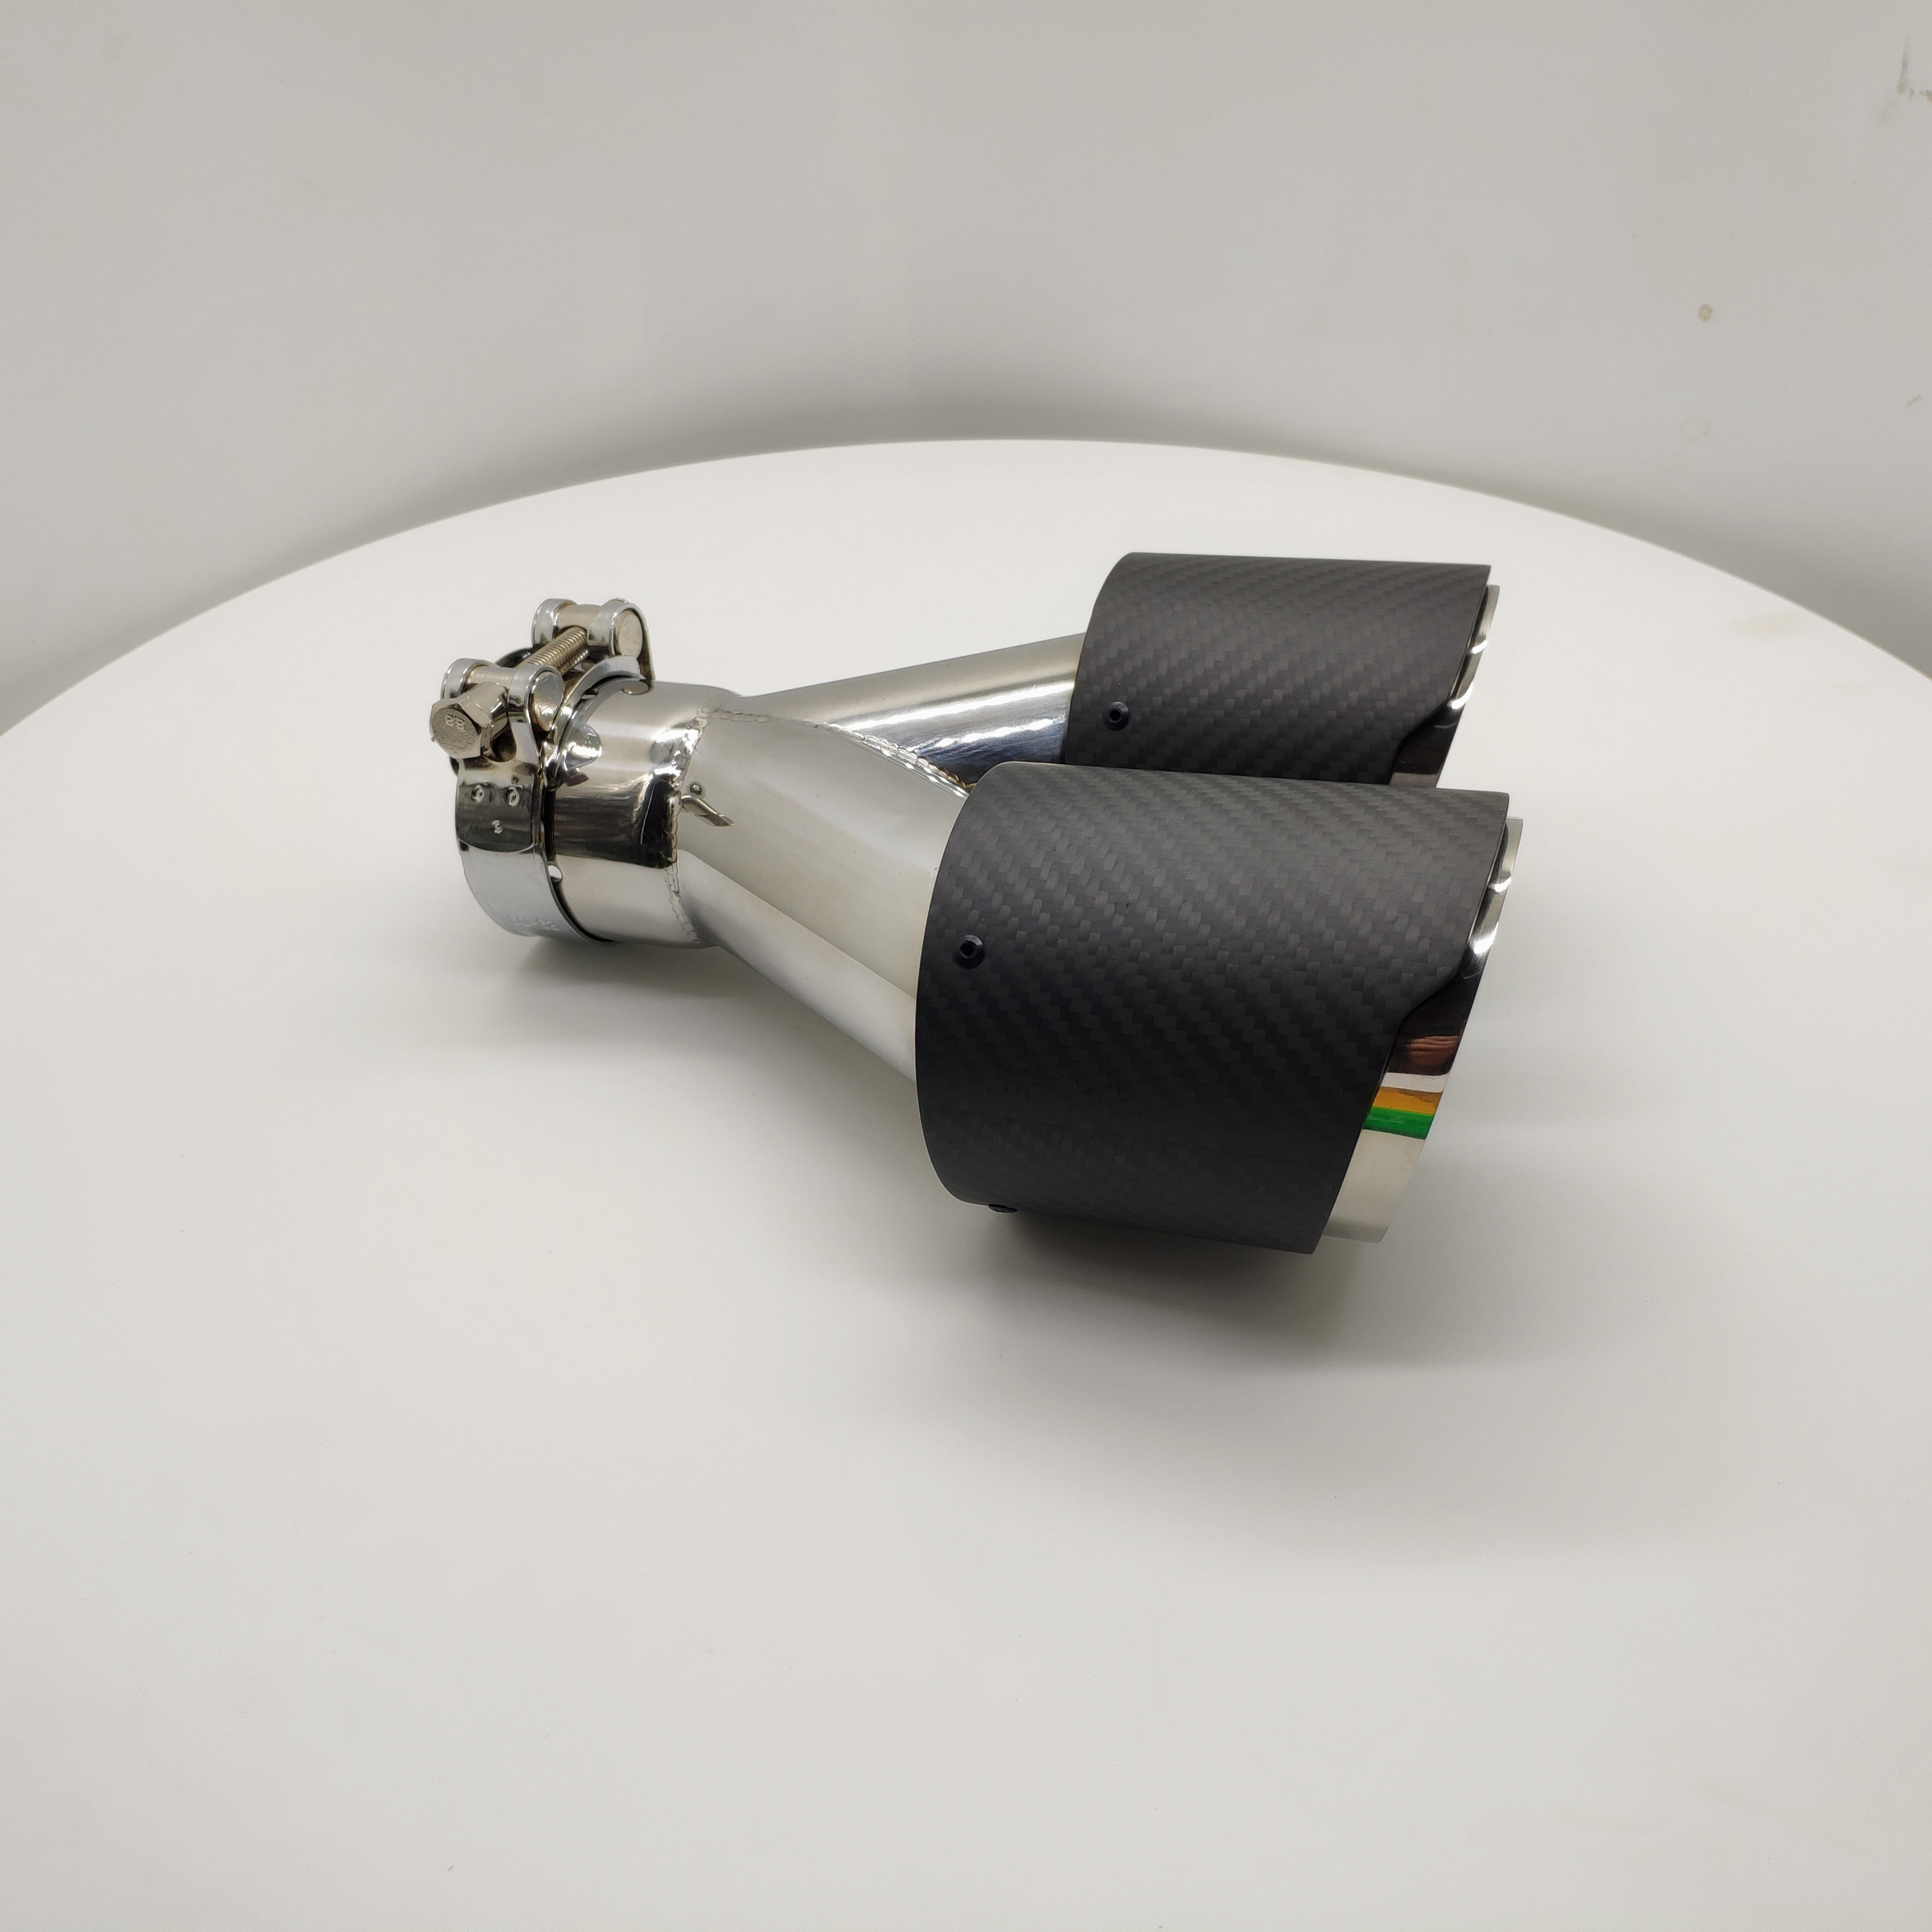 Hot Sell Dual Carbon Fiber Exhaust tip Carbon Muffler Pipe